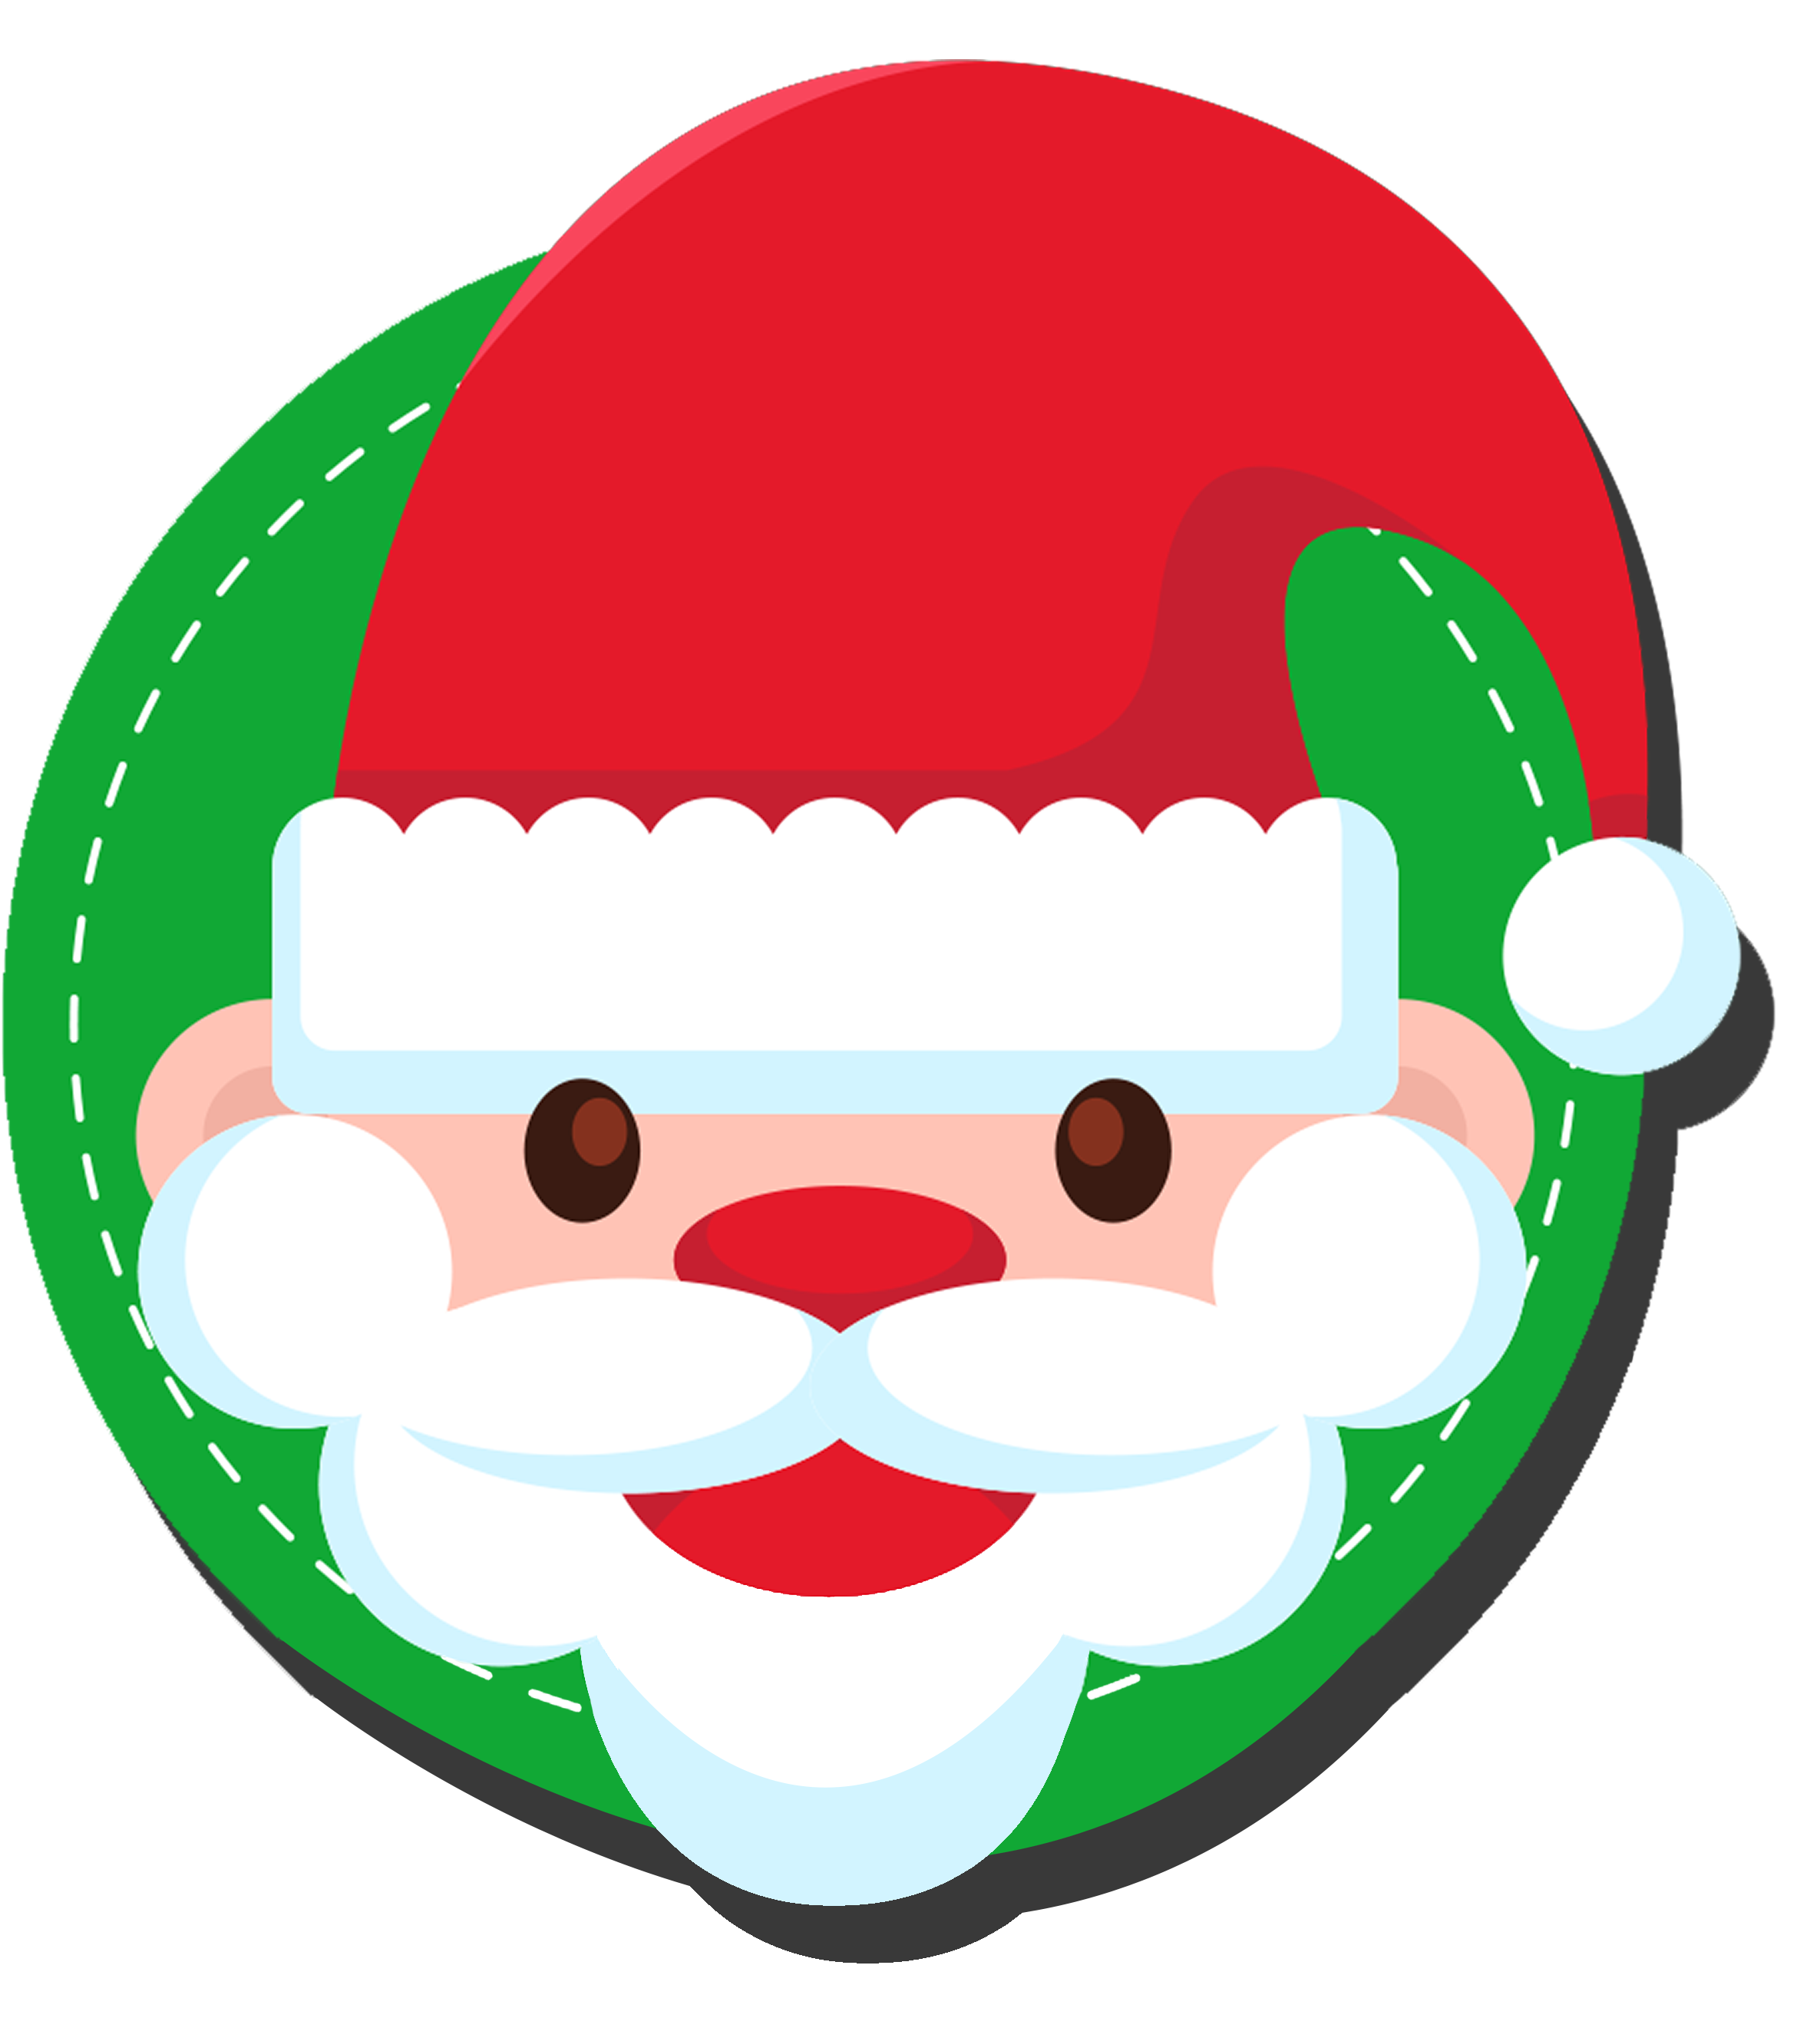 Santatracking.net